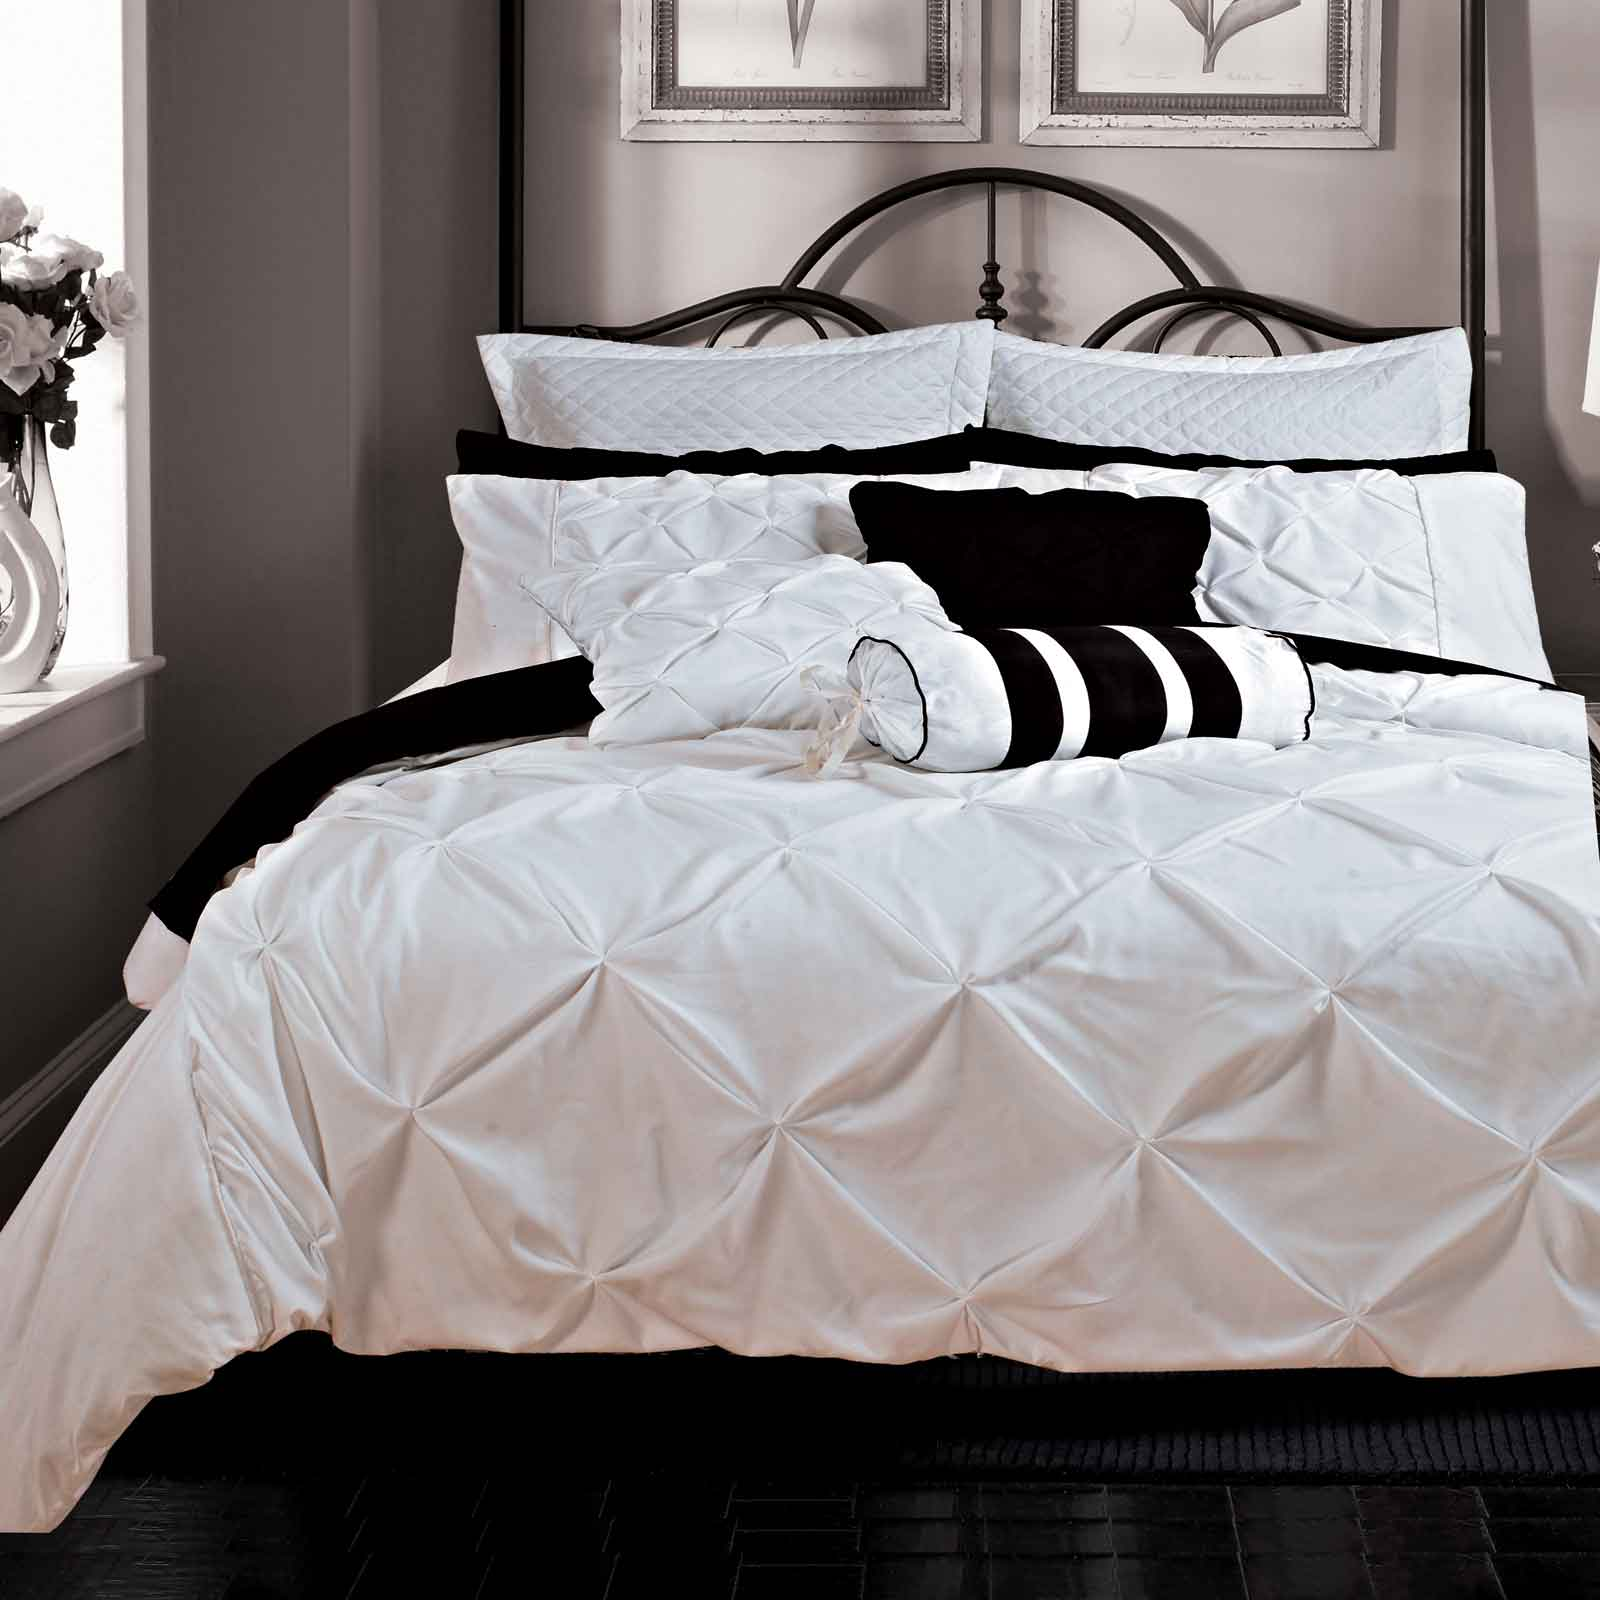 Fantine-King-Queen-Size-Duvet-Quilt-Cover-Set-White-3-Pcs-Bedding-Set-Bed-Linen